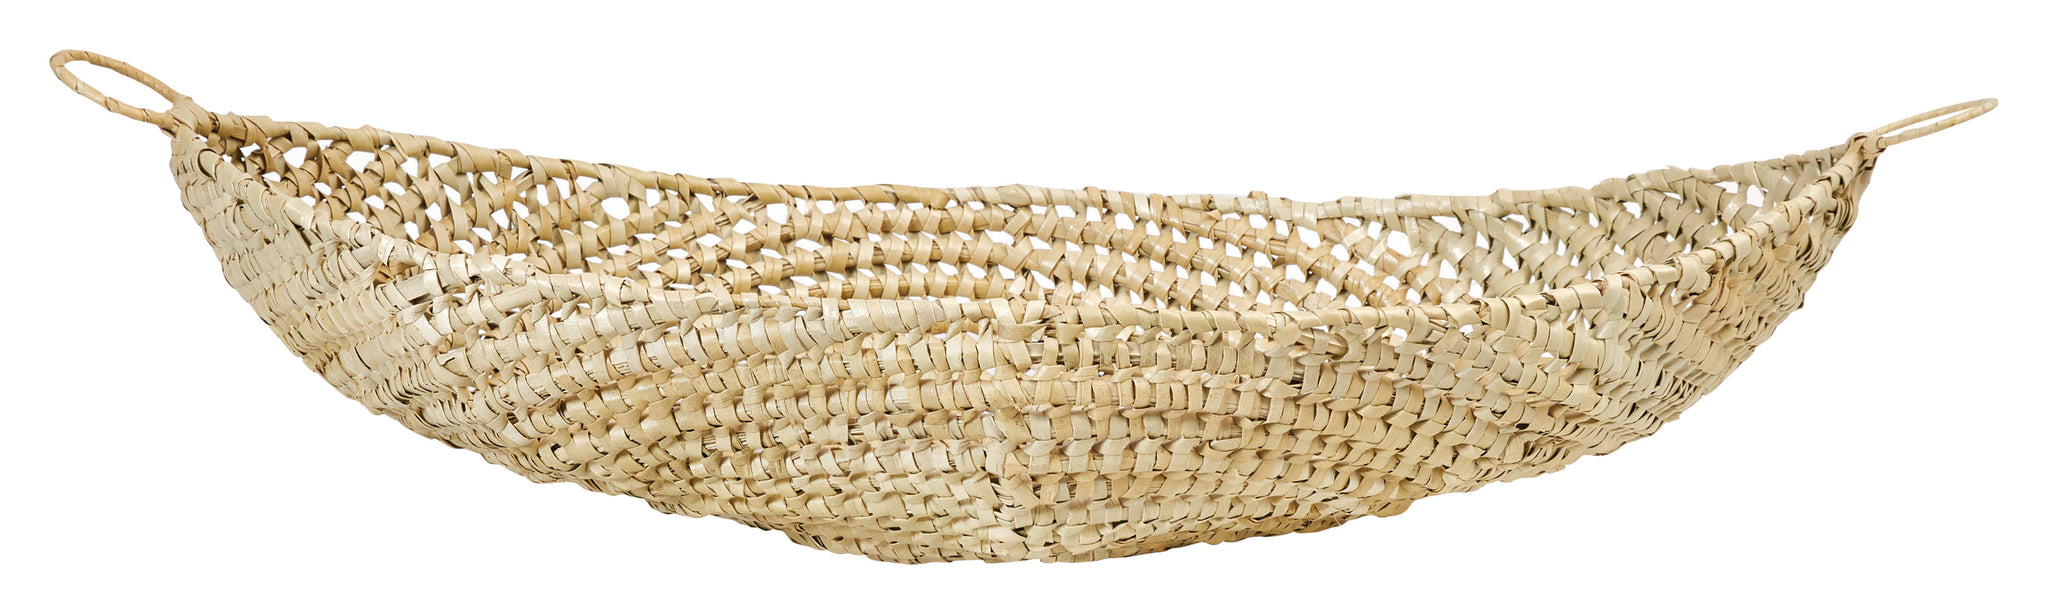 "Decorative 37""L Handwoven Karagumoy Basket"